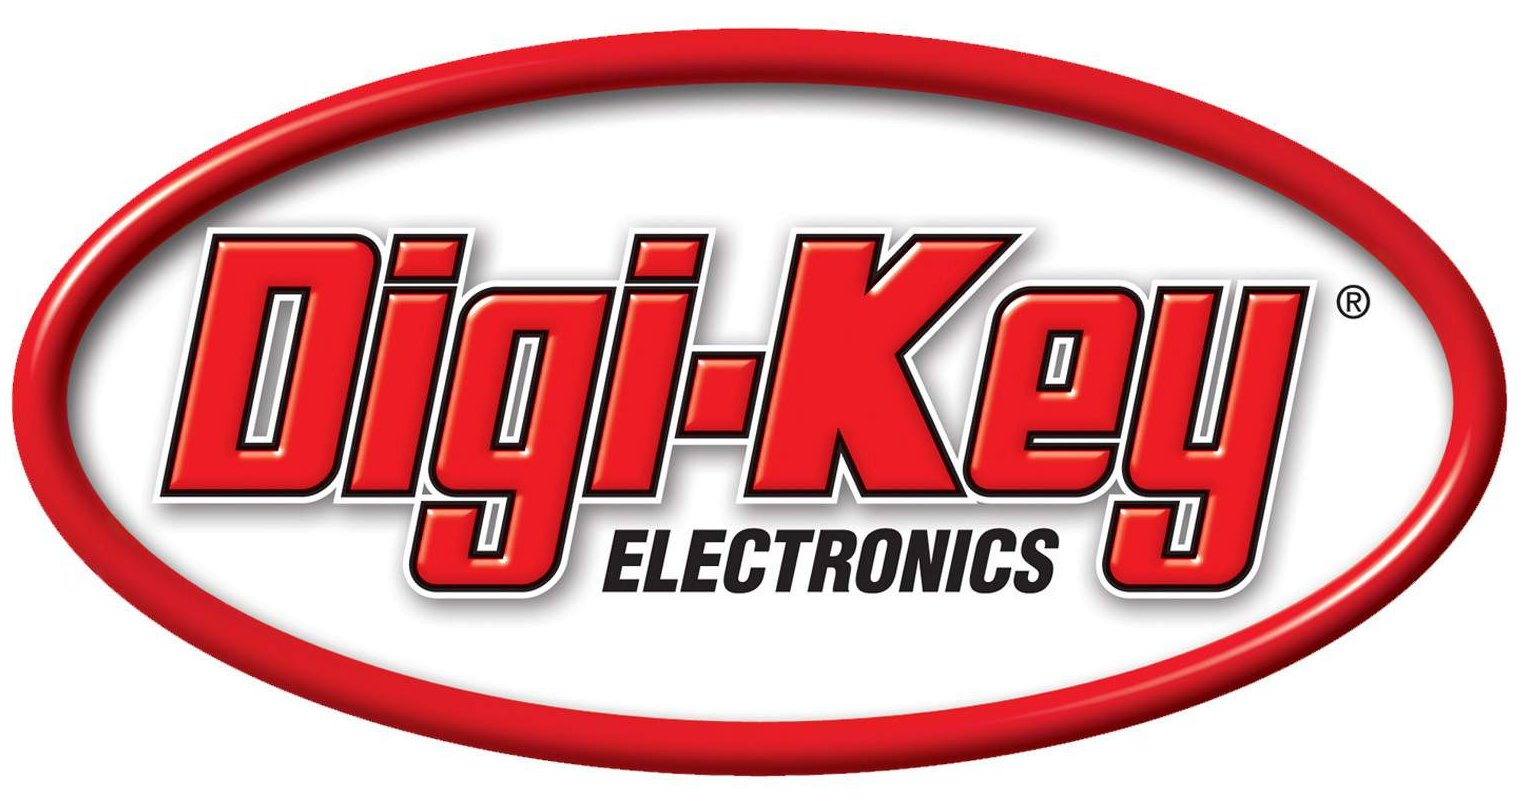 Smart Sensor Devices Announces Global Distribution Agreement With Digi-Key Electronics